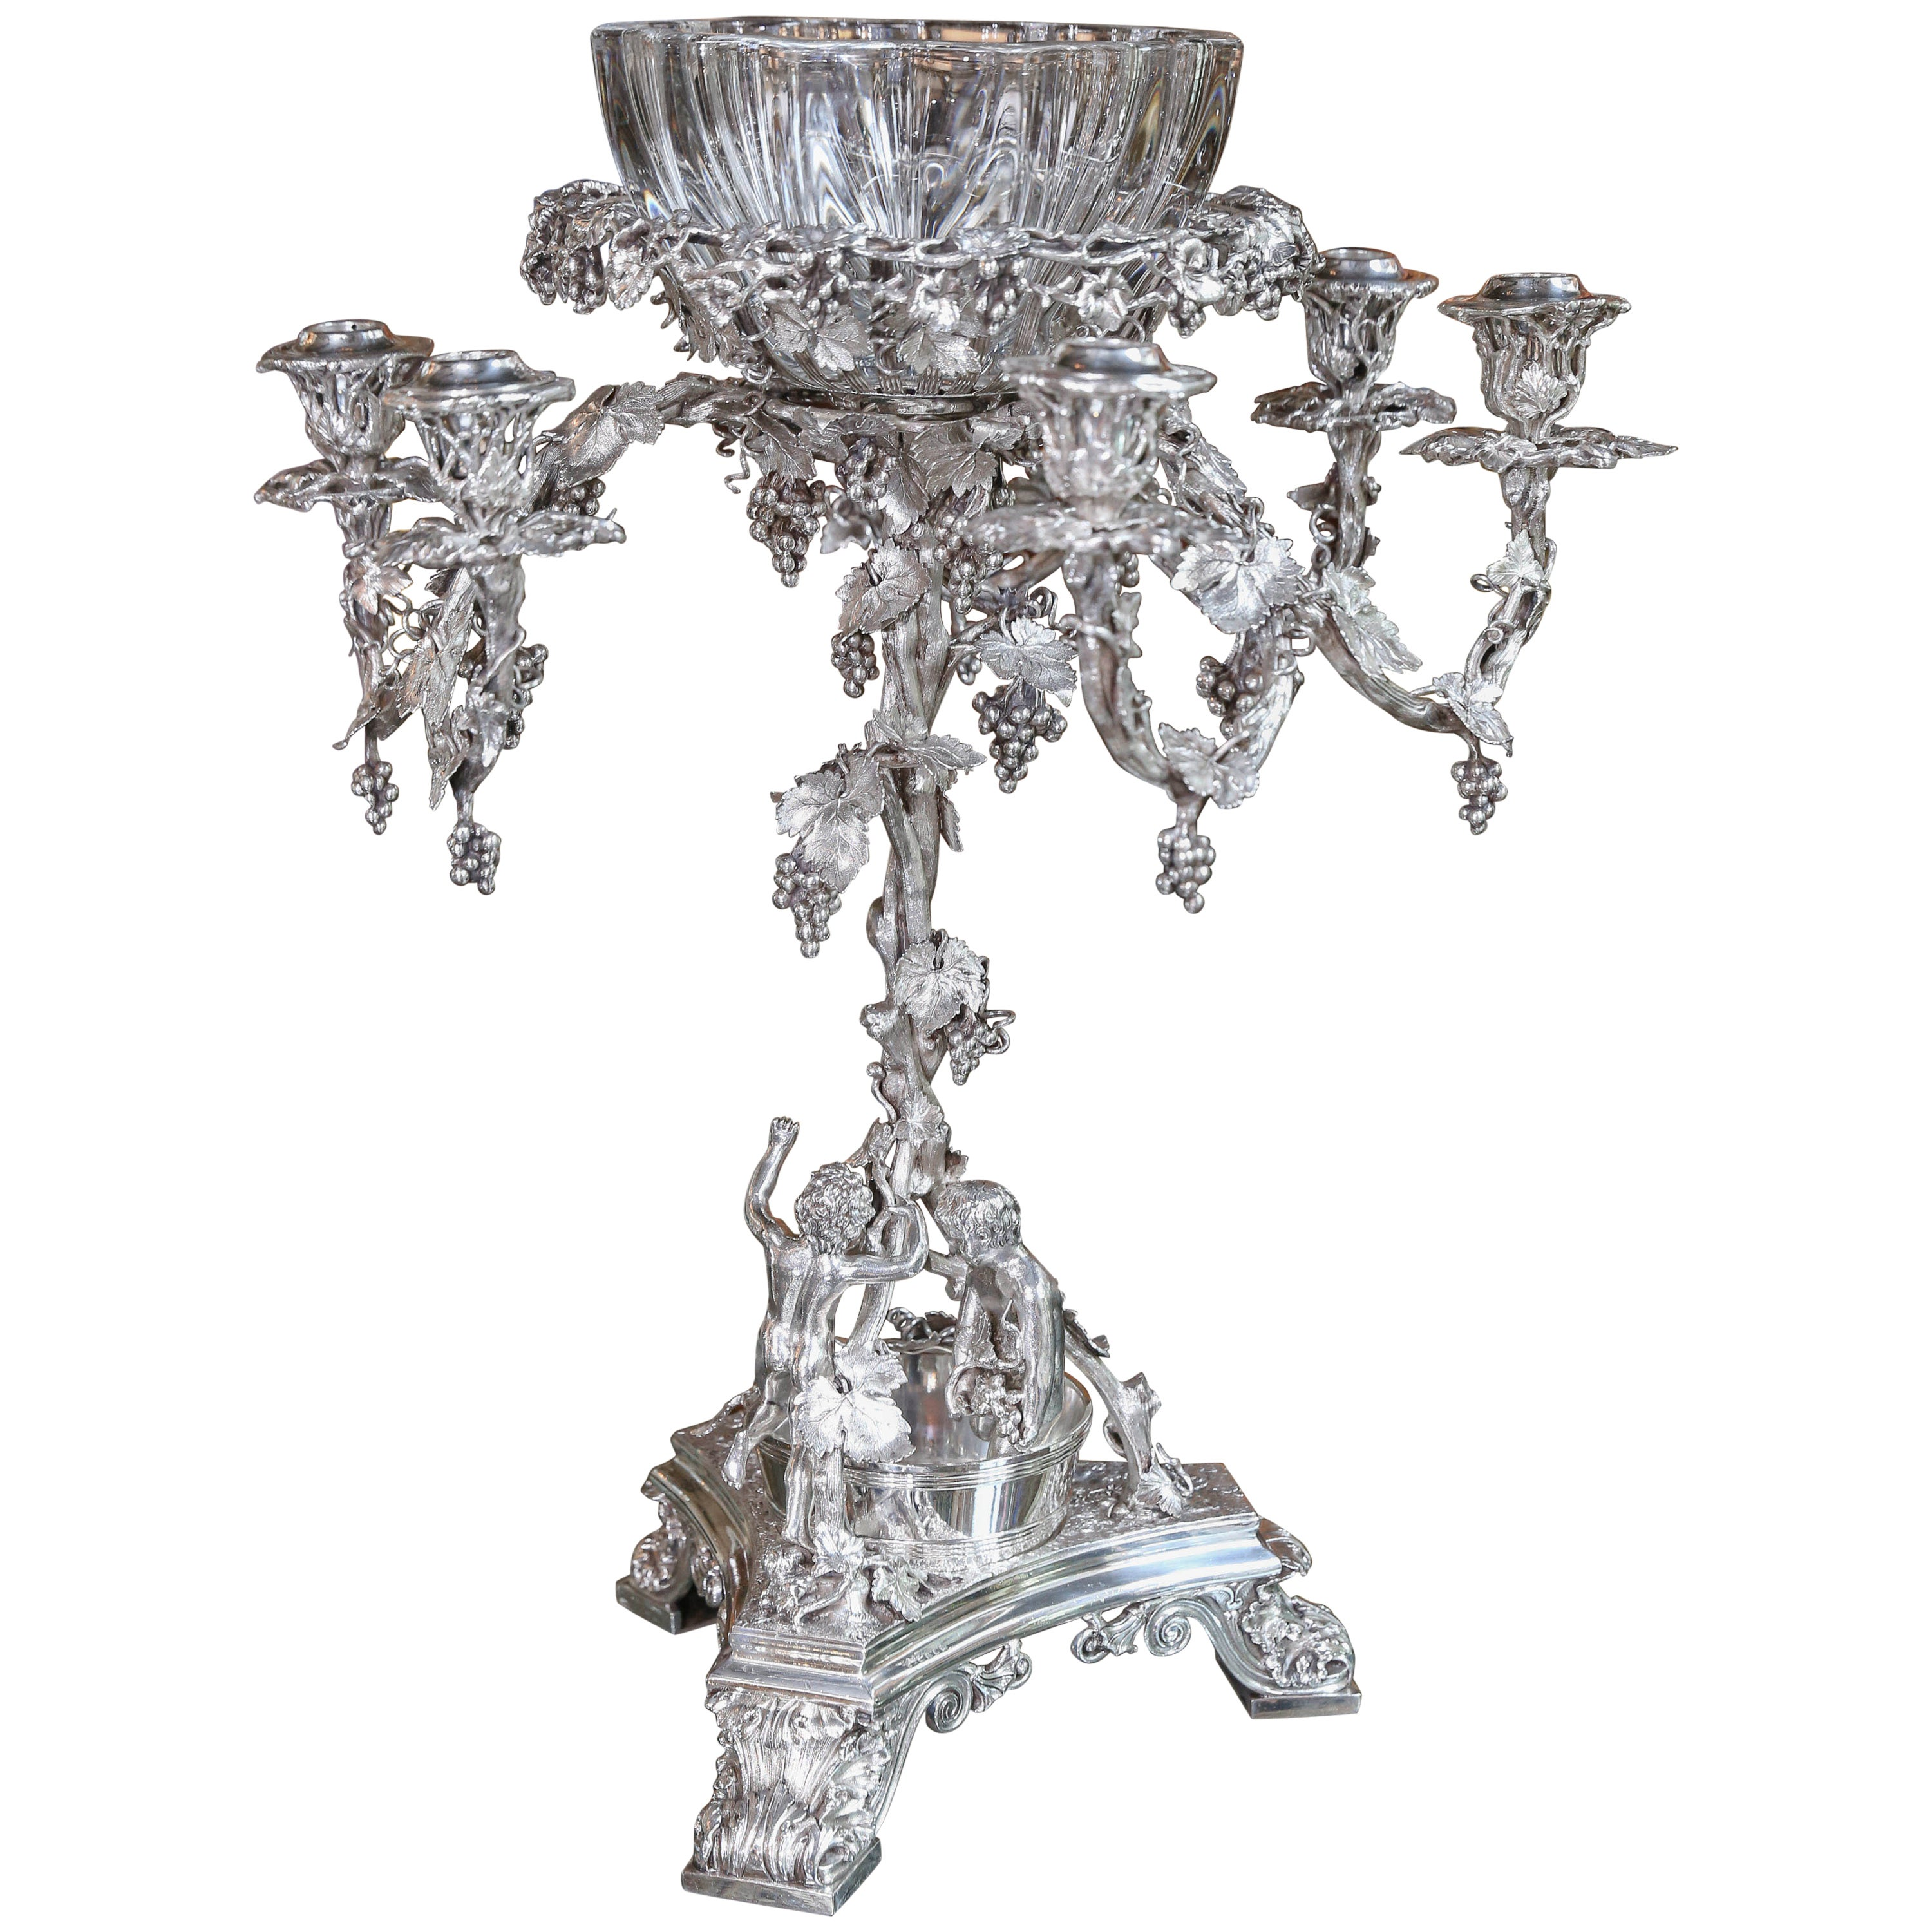 Monumental Very Fine English Silver Plated Epergne